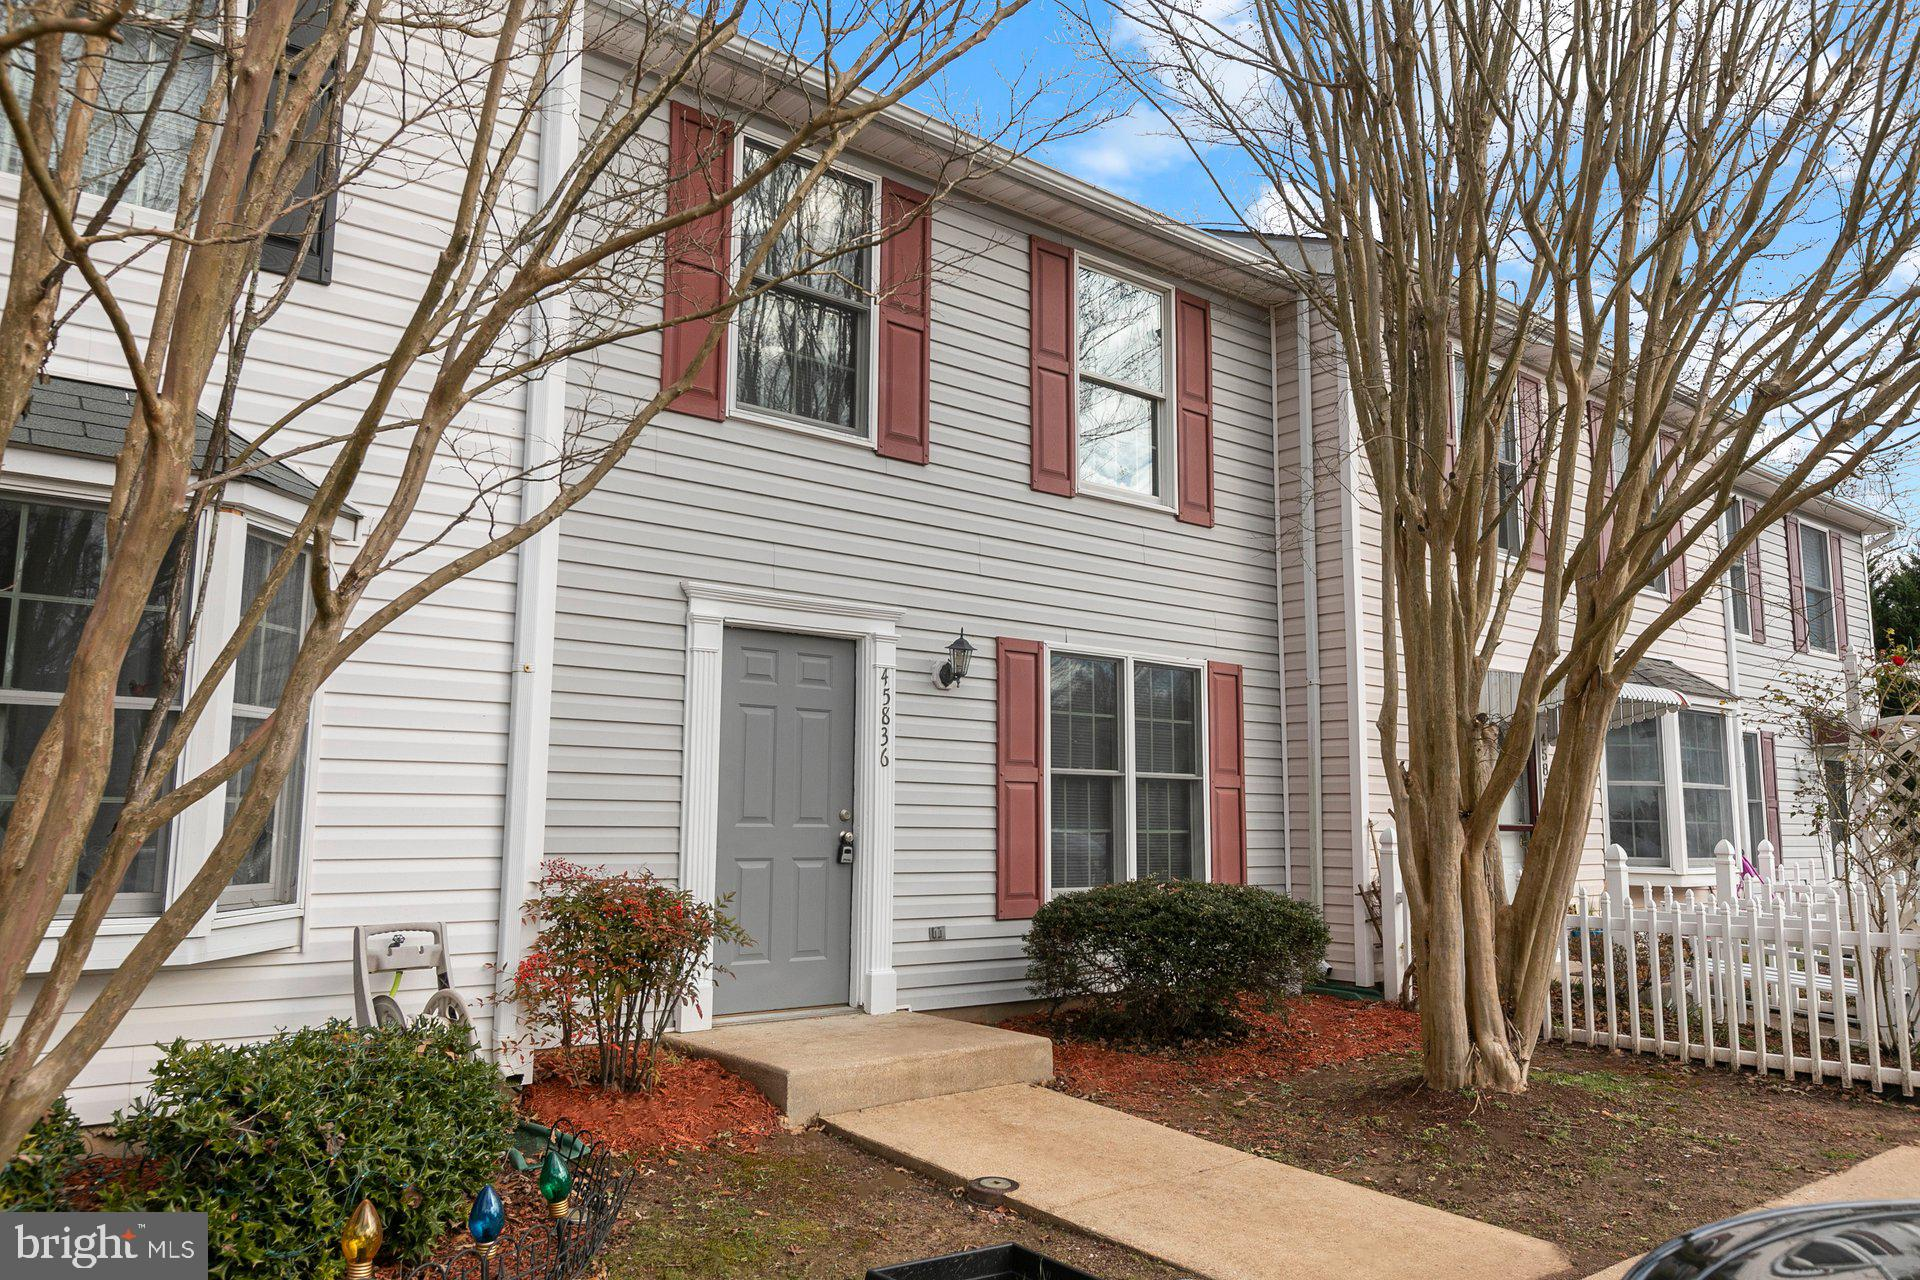 Tremendous Value! Updated TownHome with Fully Fenced Backyard! This home offers new flooring and has